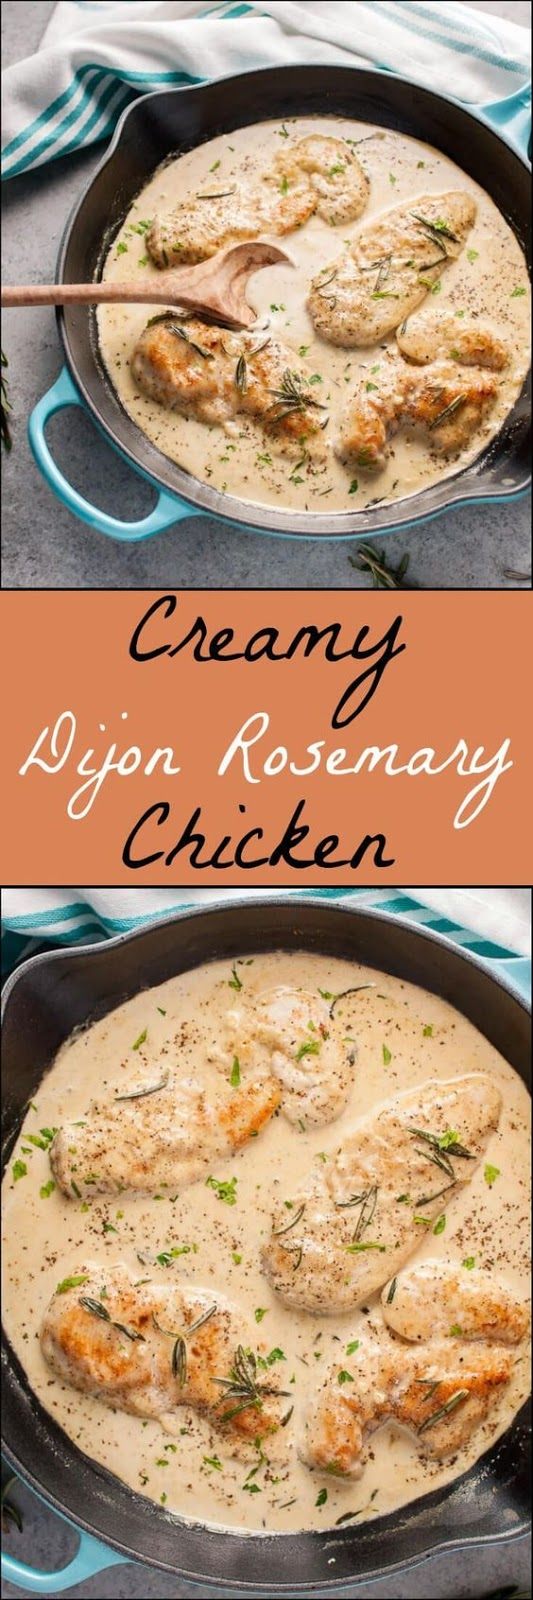 Creamy Dijon Rosemary Chicken